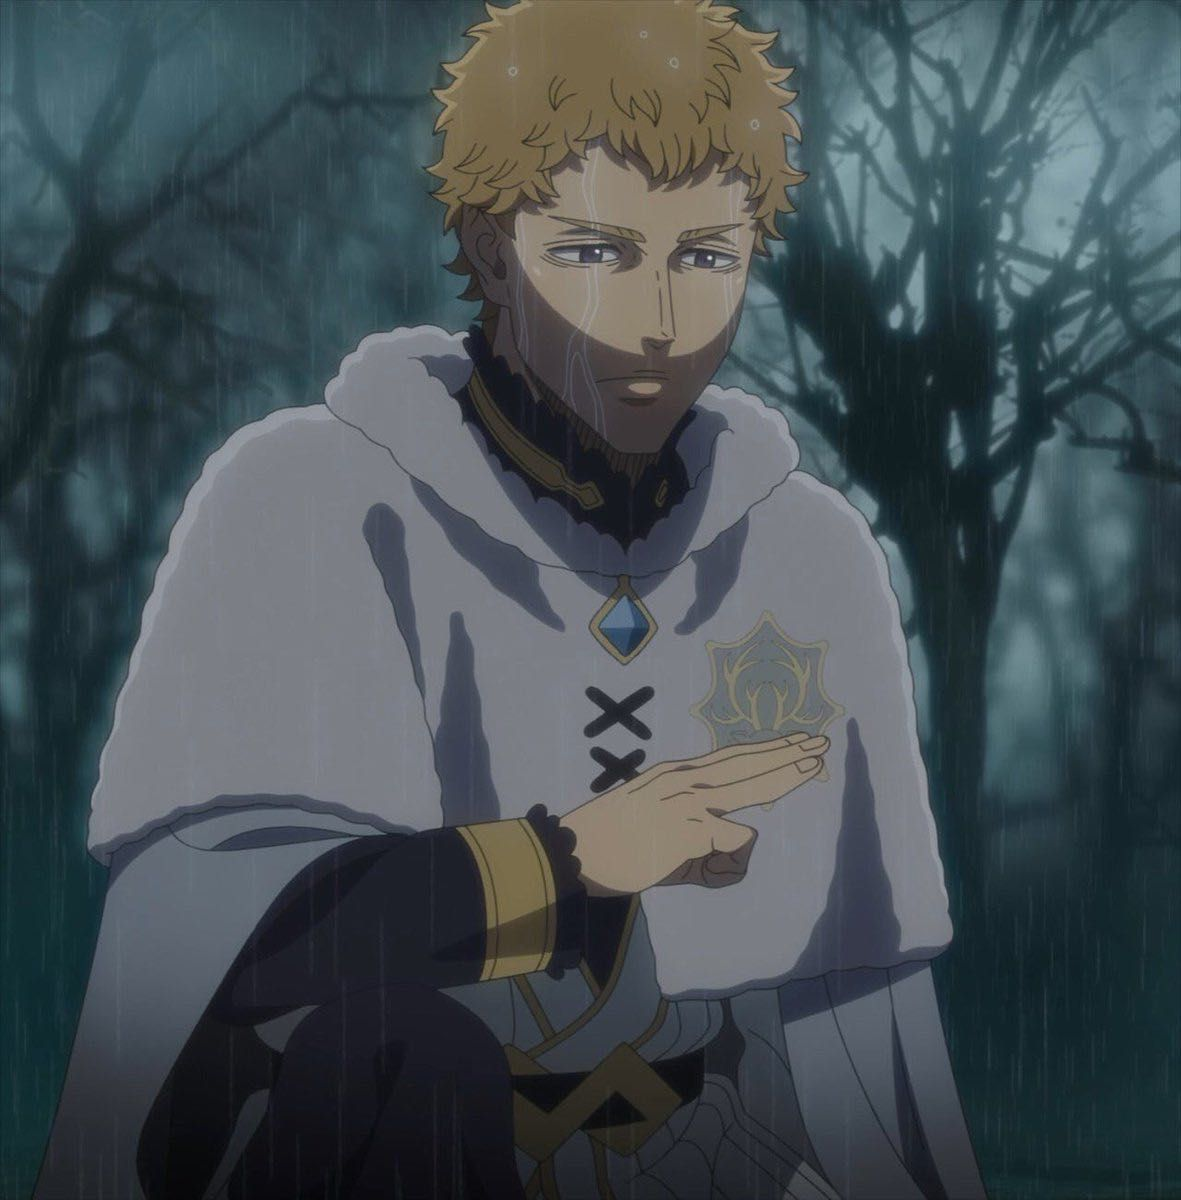 Julius Visconti X Reader Memorialized Pachy Site Spoiler there is still a possibility that julius nova chrono could be revived because rades spirito has the ability to revive corpse but now he is able to revive the soul too. pachy site